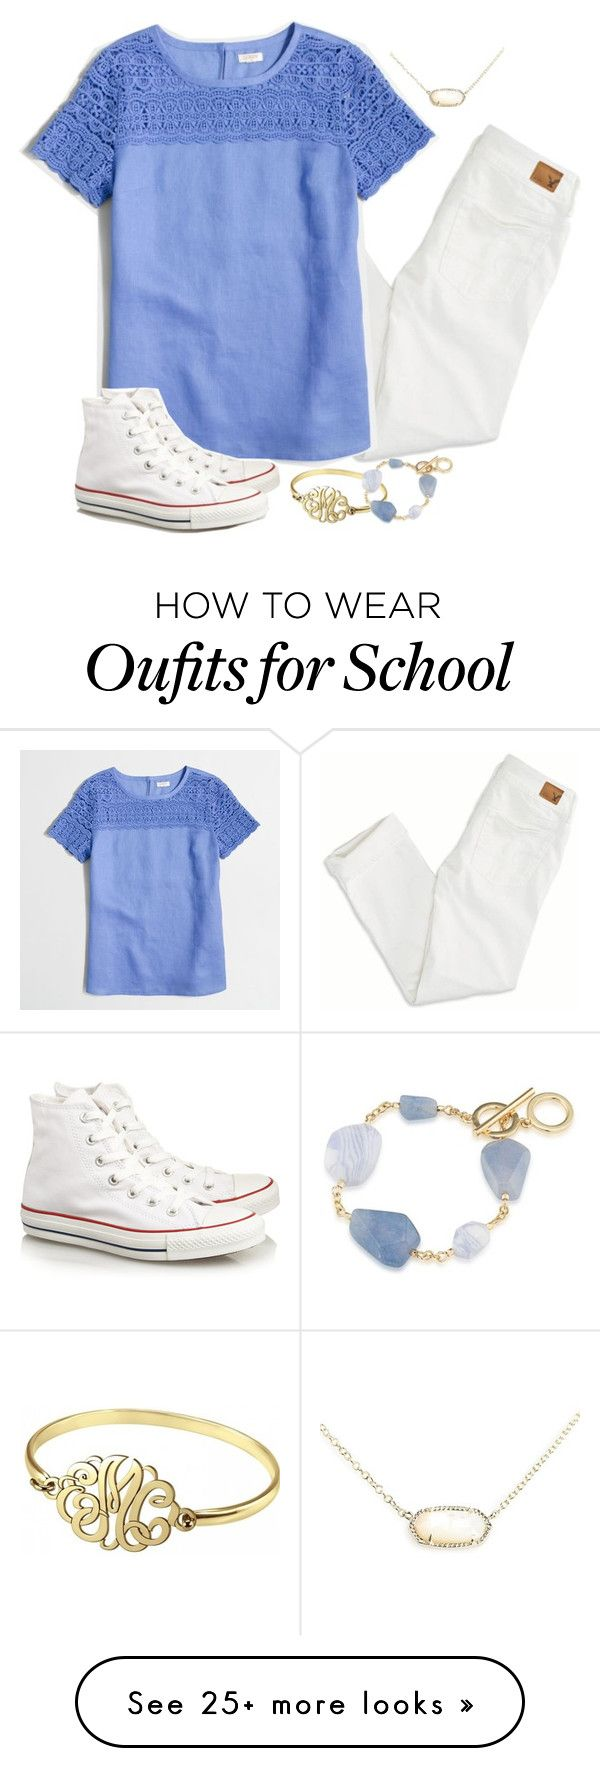 """Day Two: Last Day of School"" by isabelrohrer on Polyvore featuring American Eagle Outfitters, J.Crew, Converse, Kendra Scott, Alison & Ivy, Carolee and schoolsoutmadiandashe"